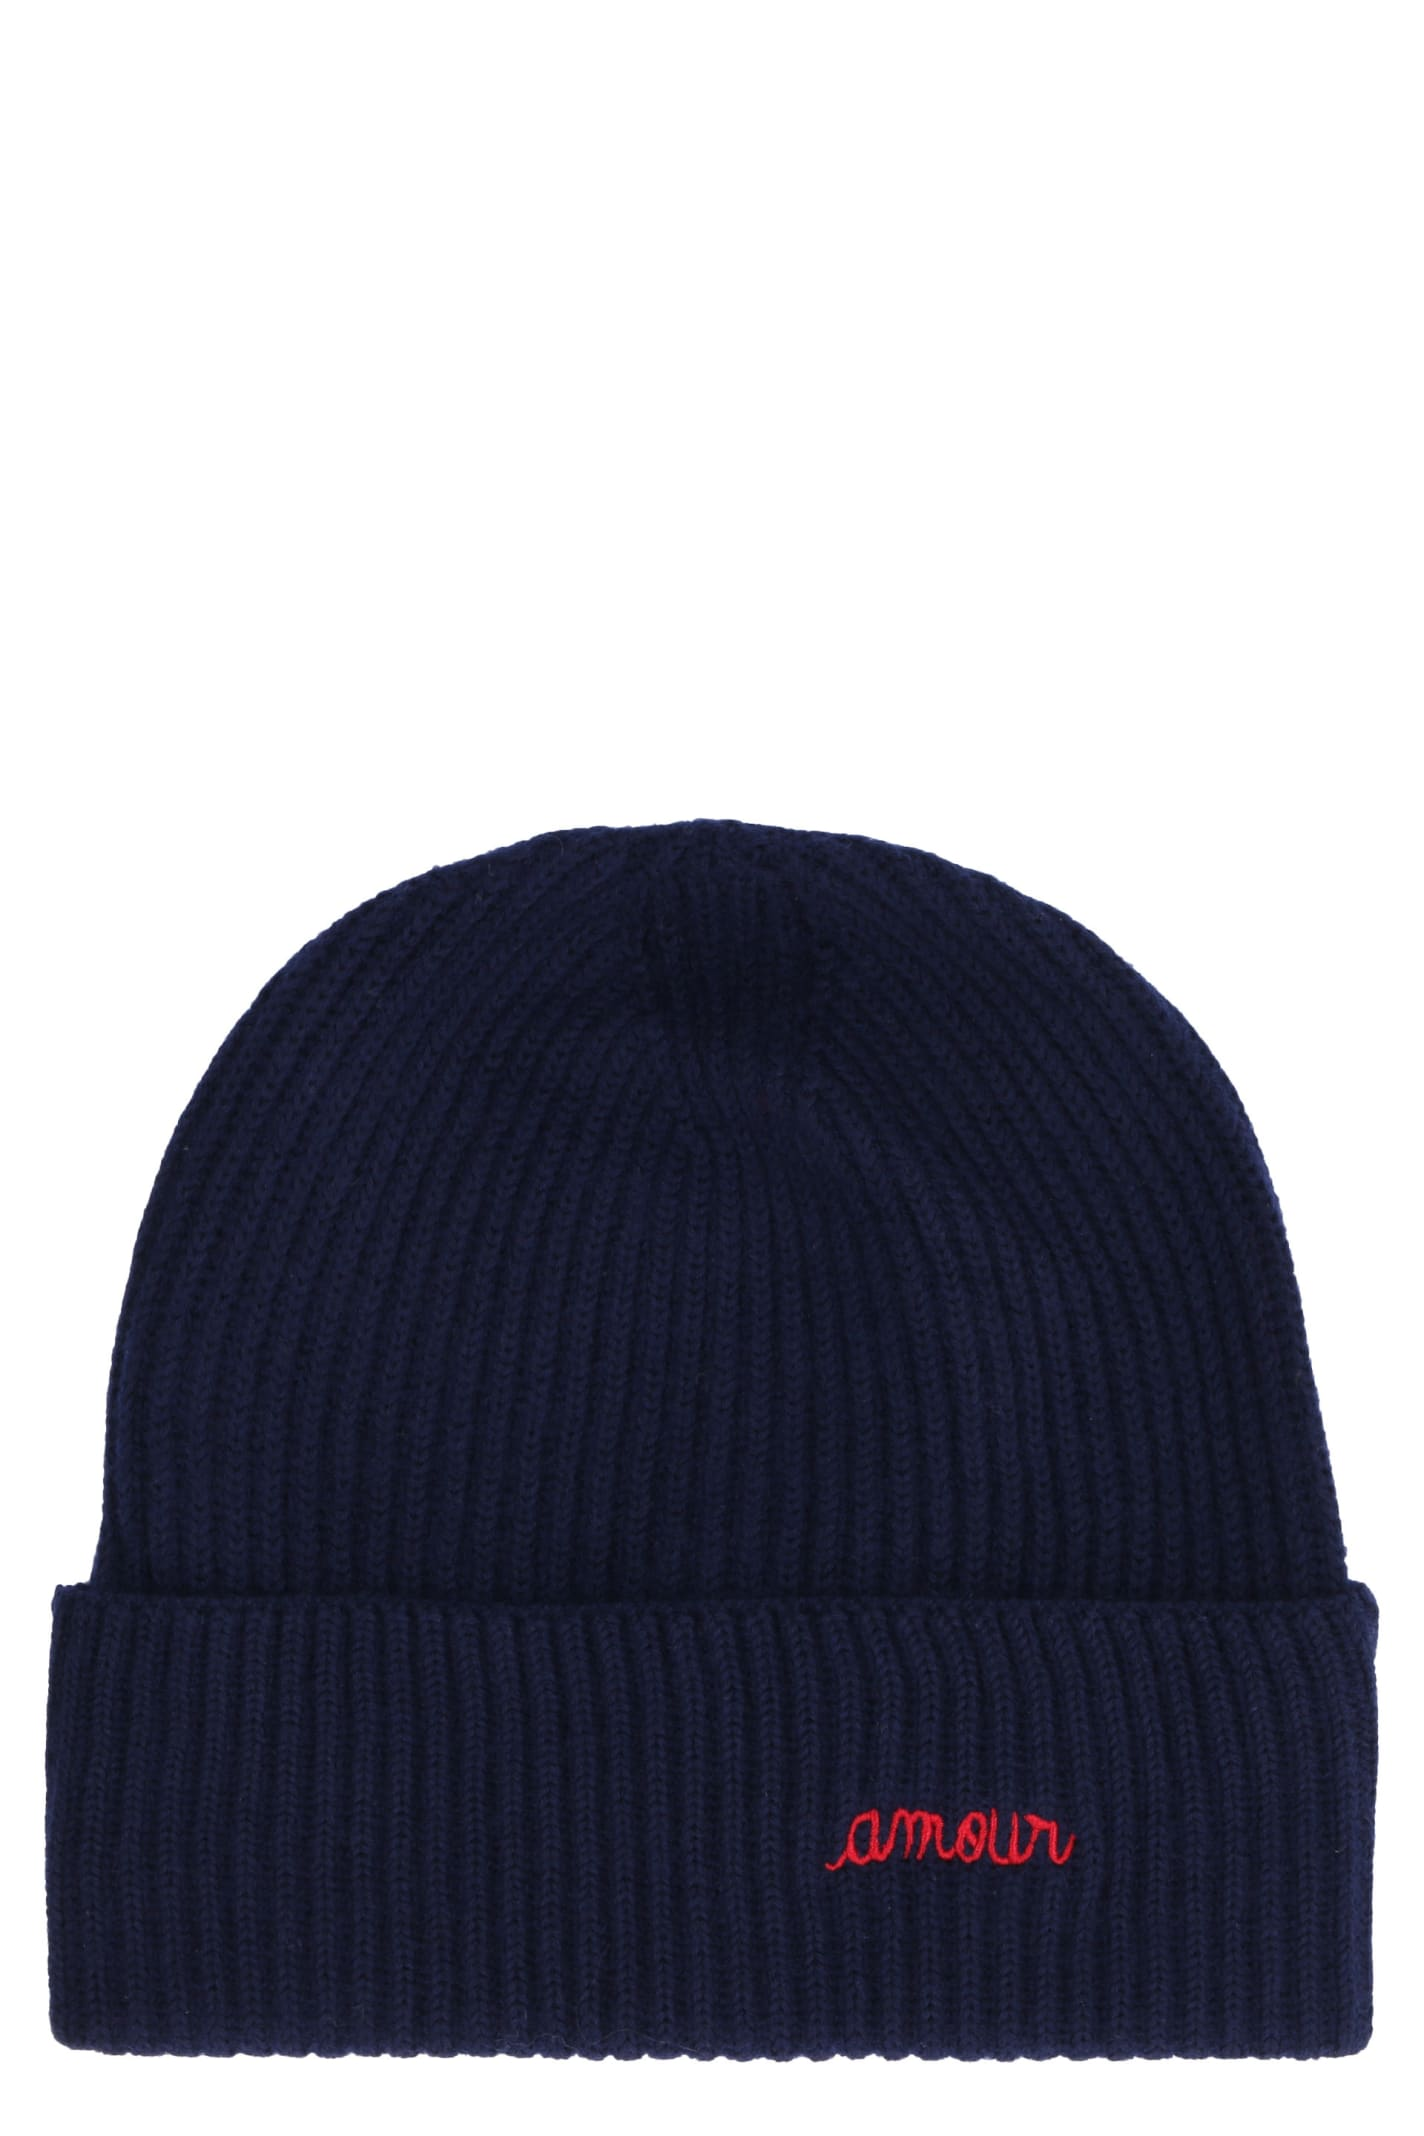 Amour Ribbed Knit Beanie